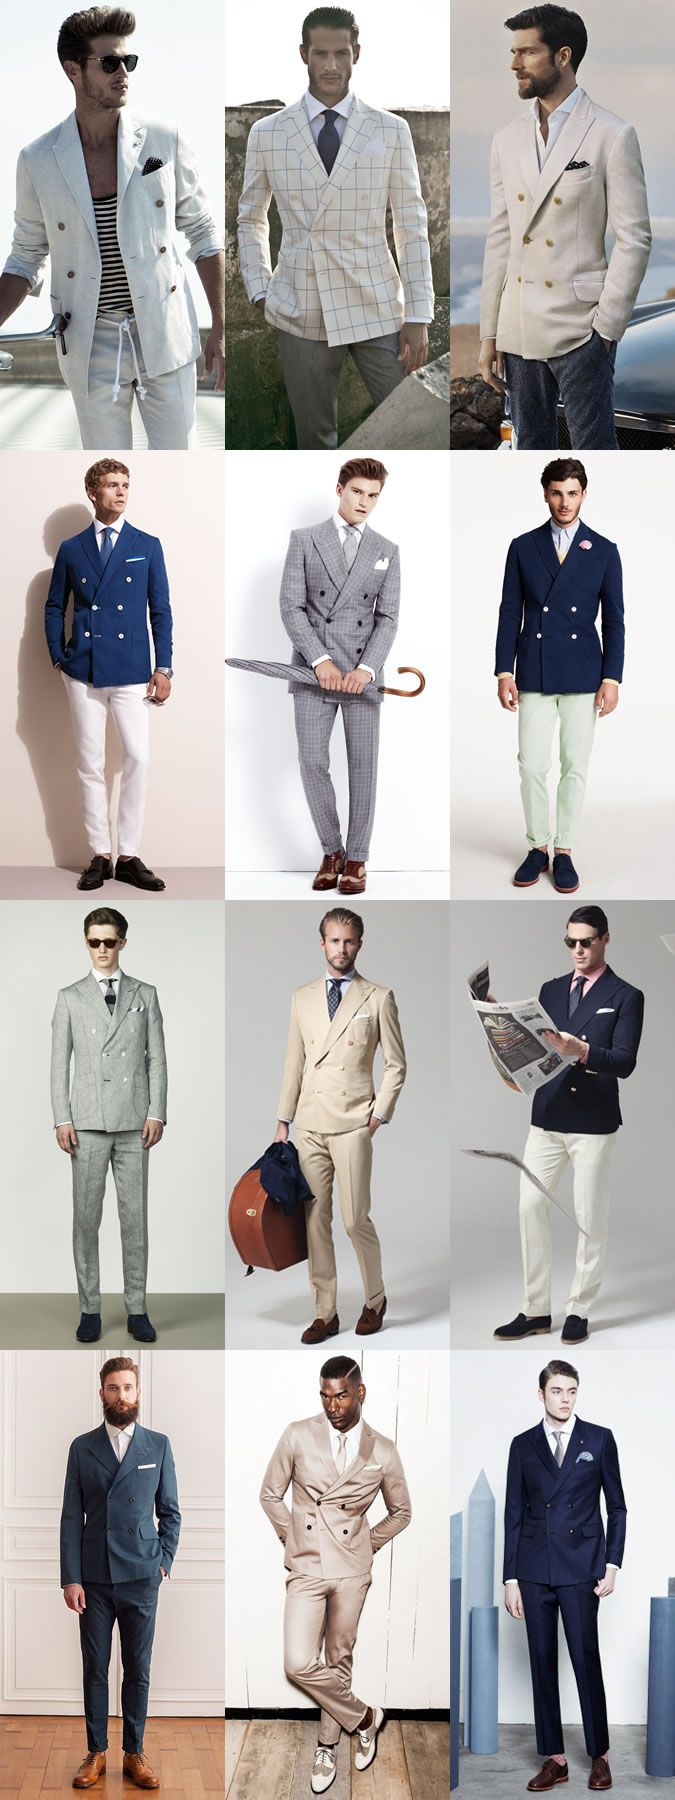 Men's 2014 Spring/Summer Fashion Trend: Double-Breasted Tailoring Modern Lookbook Inspiration